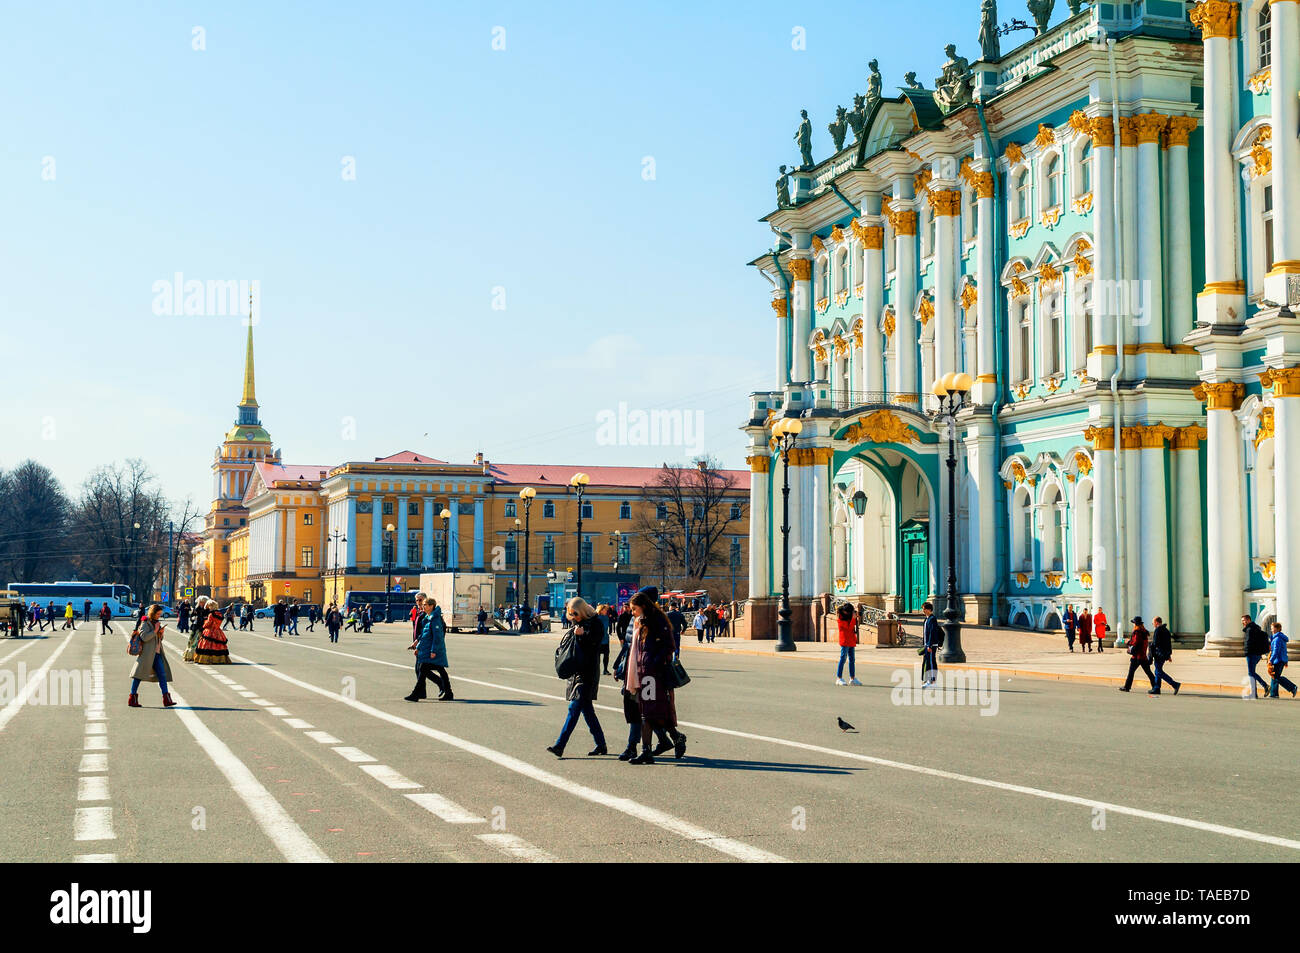 St Petersburg, Russia - April 5, 2019. Tourists walking around the Palace square near the Winter Palace, Hermitage Museum Building. City landscape - Stock Image